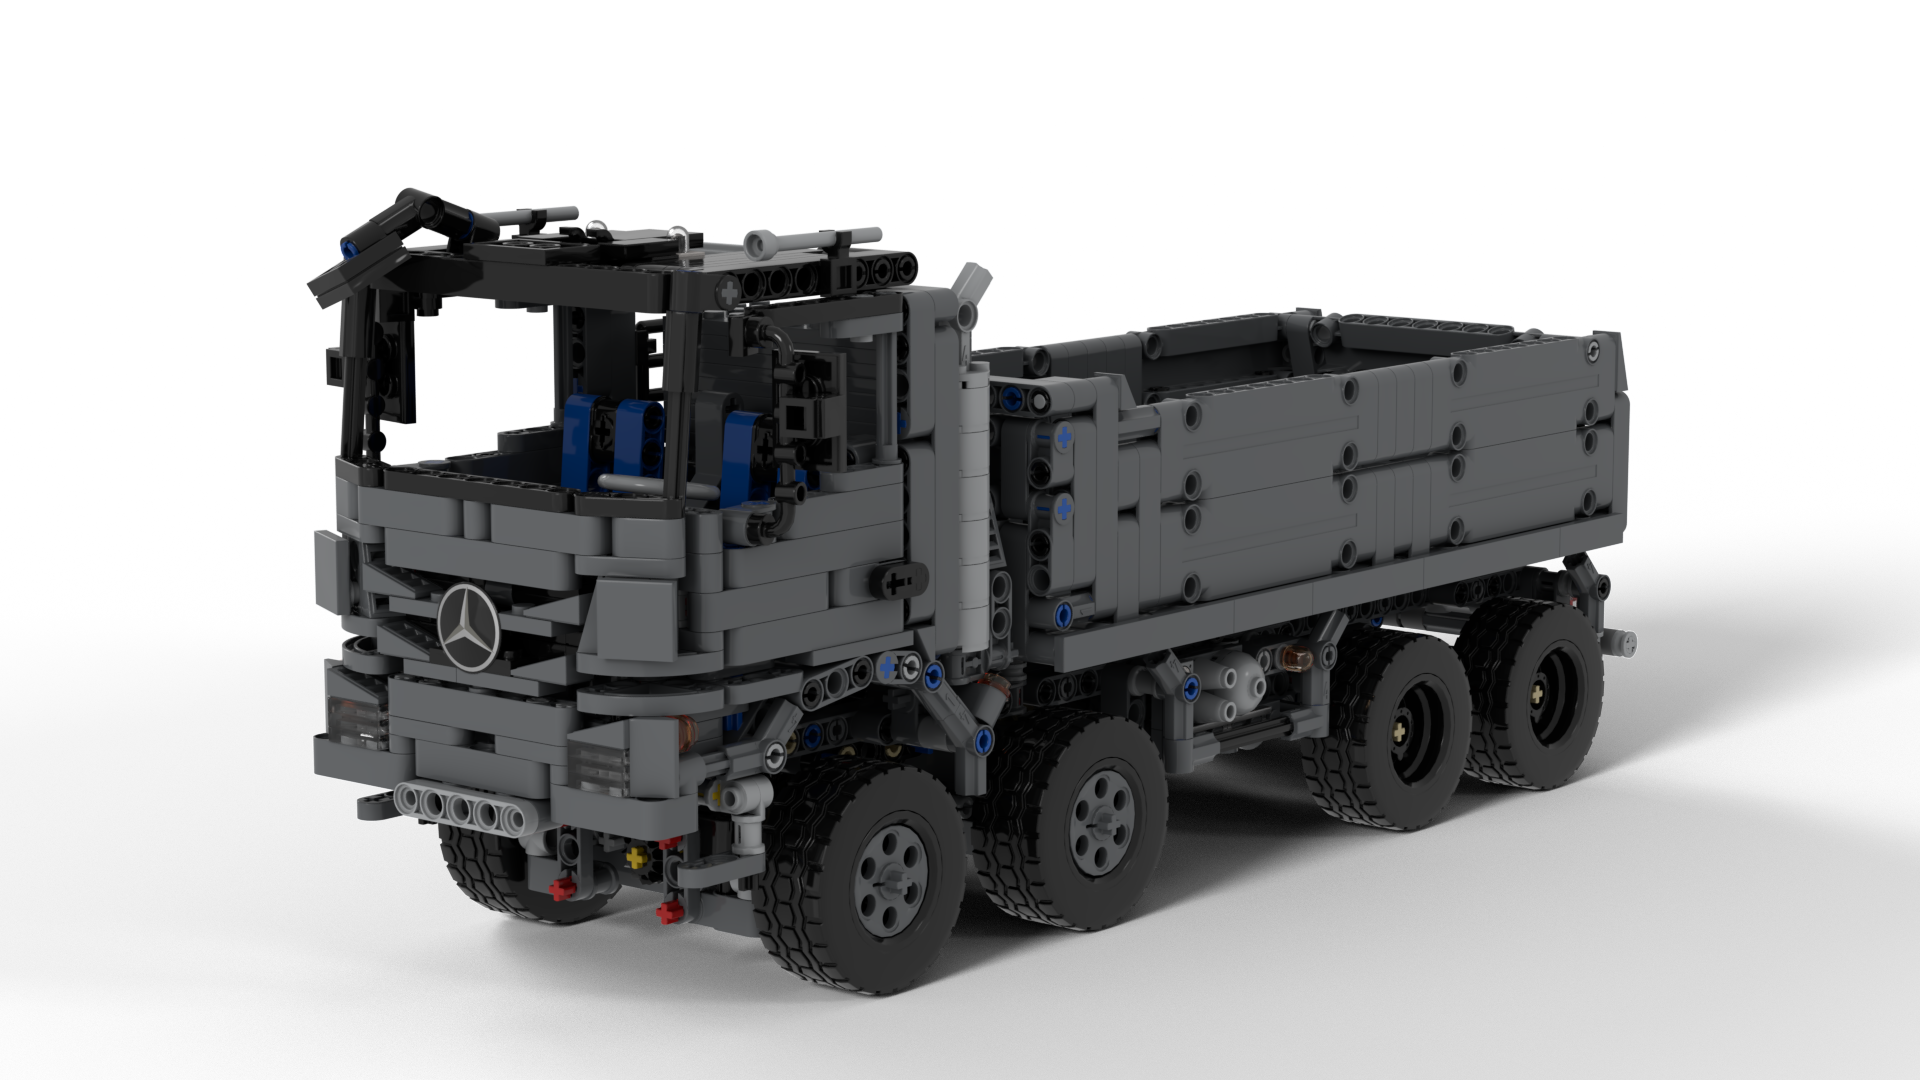 Technic MOC 25443 Lego Technic 8x4 Mercedes Actros Dump Truck Designed By Antoineddp